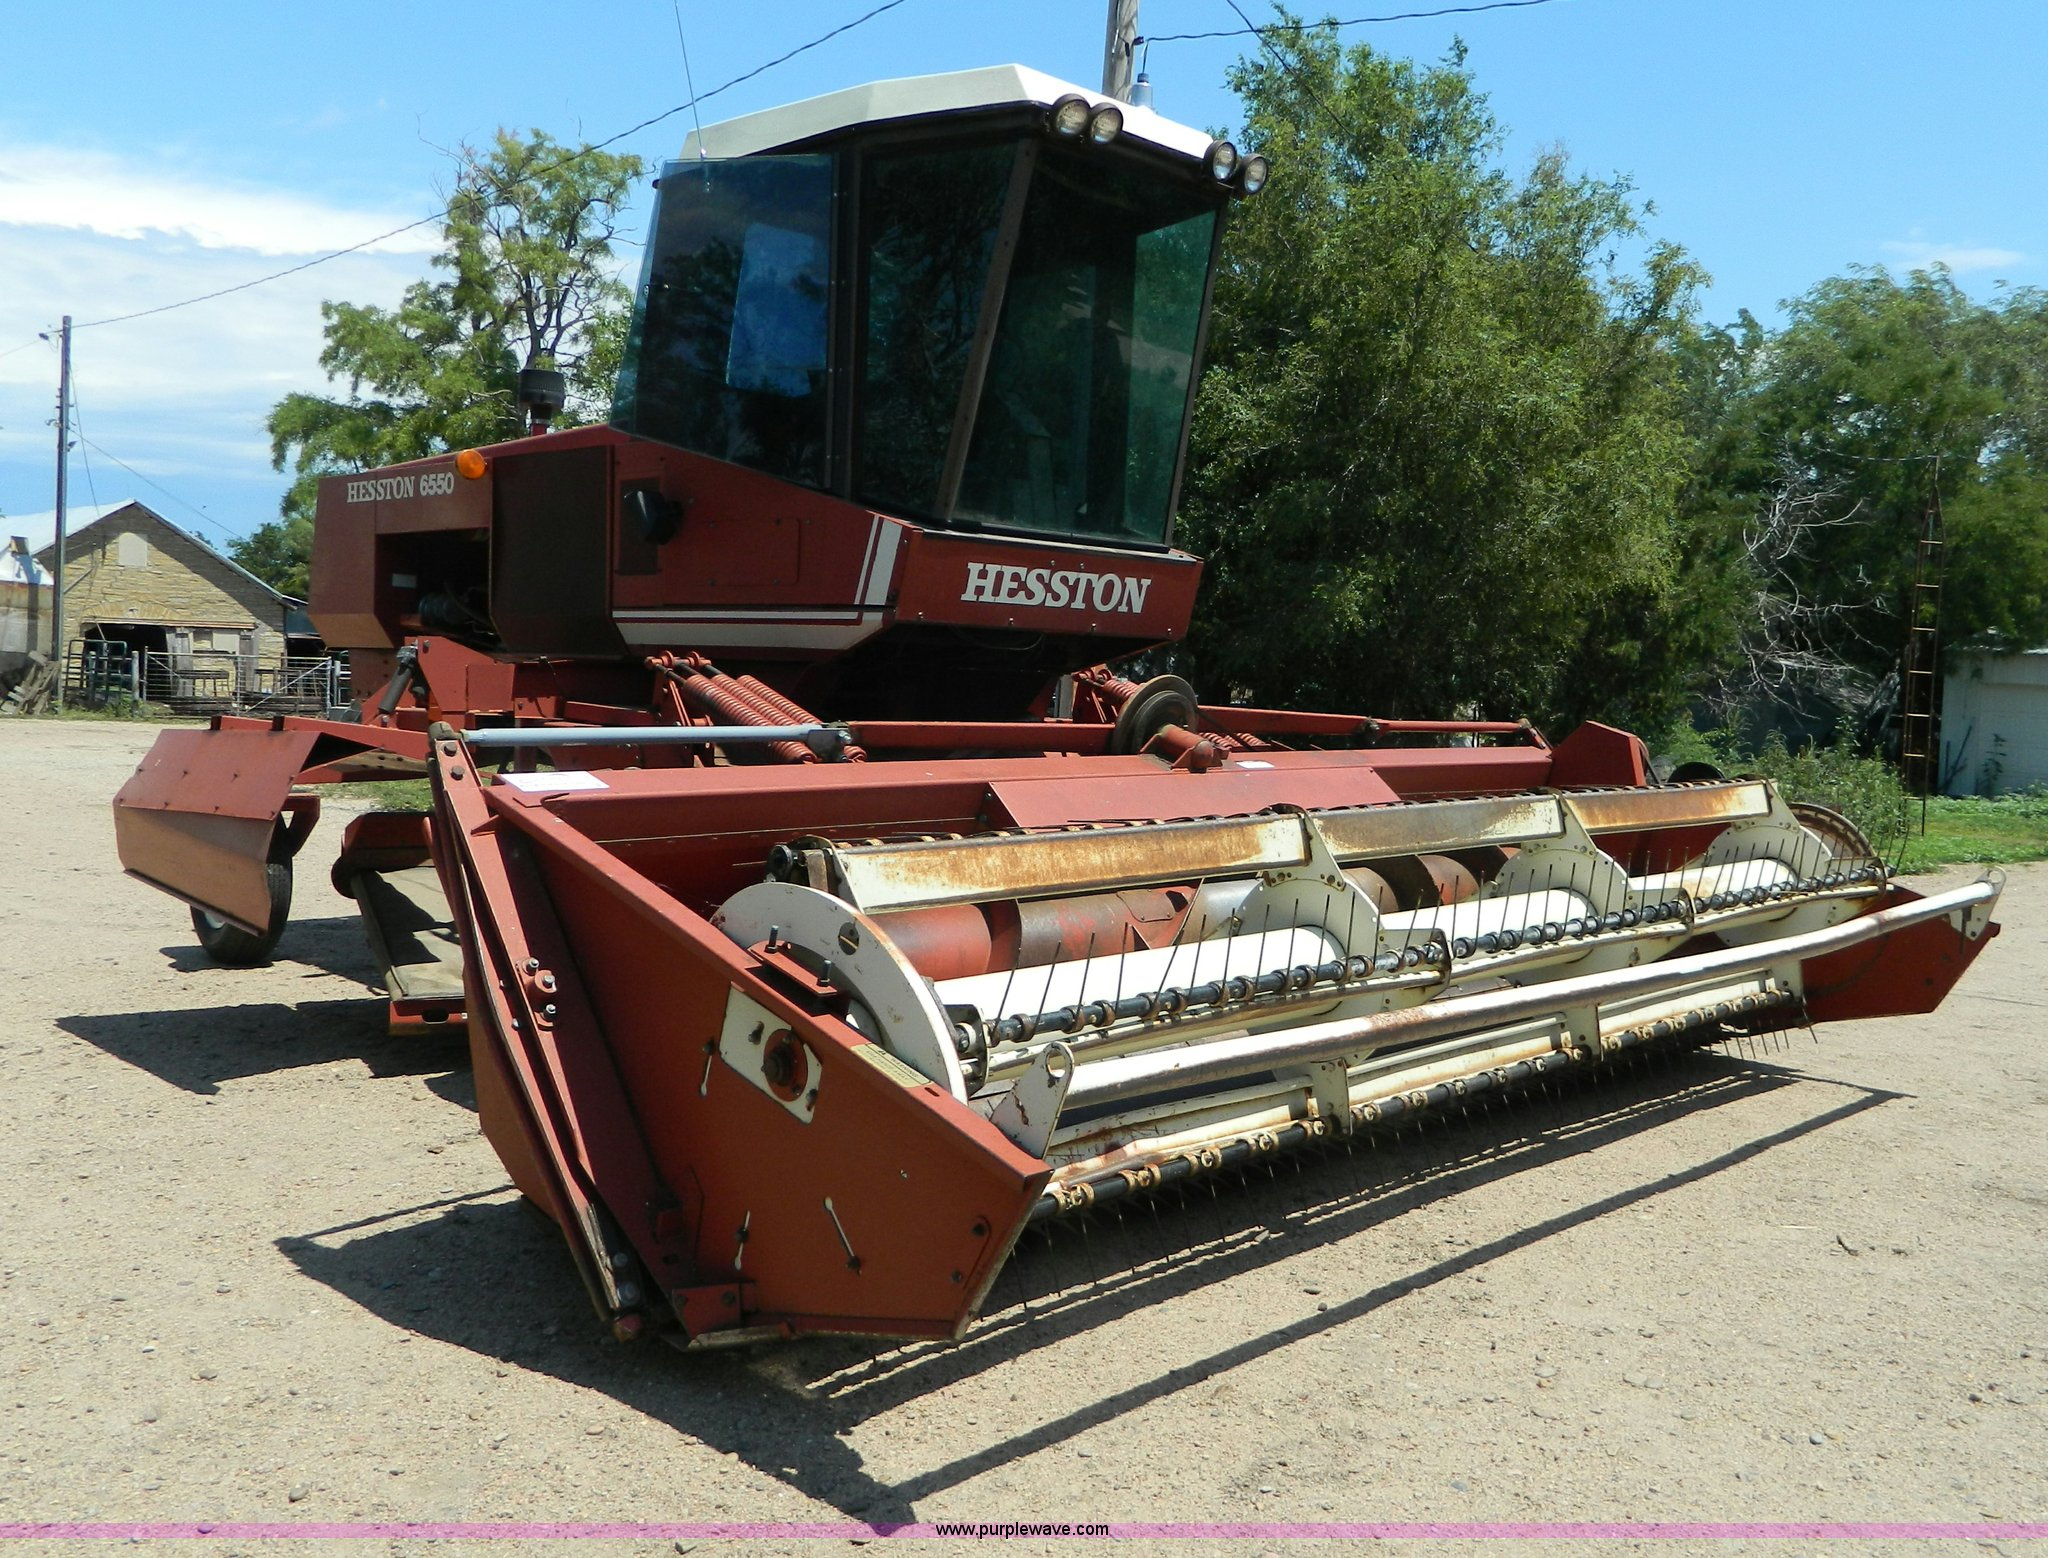 ... Hesston 6550 self-propelled swather Full size in new window ...